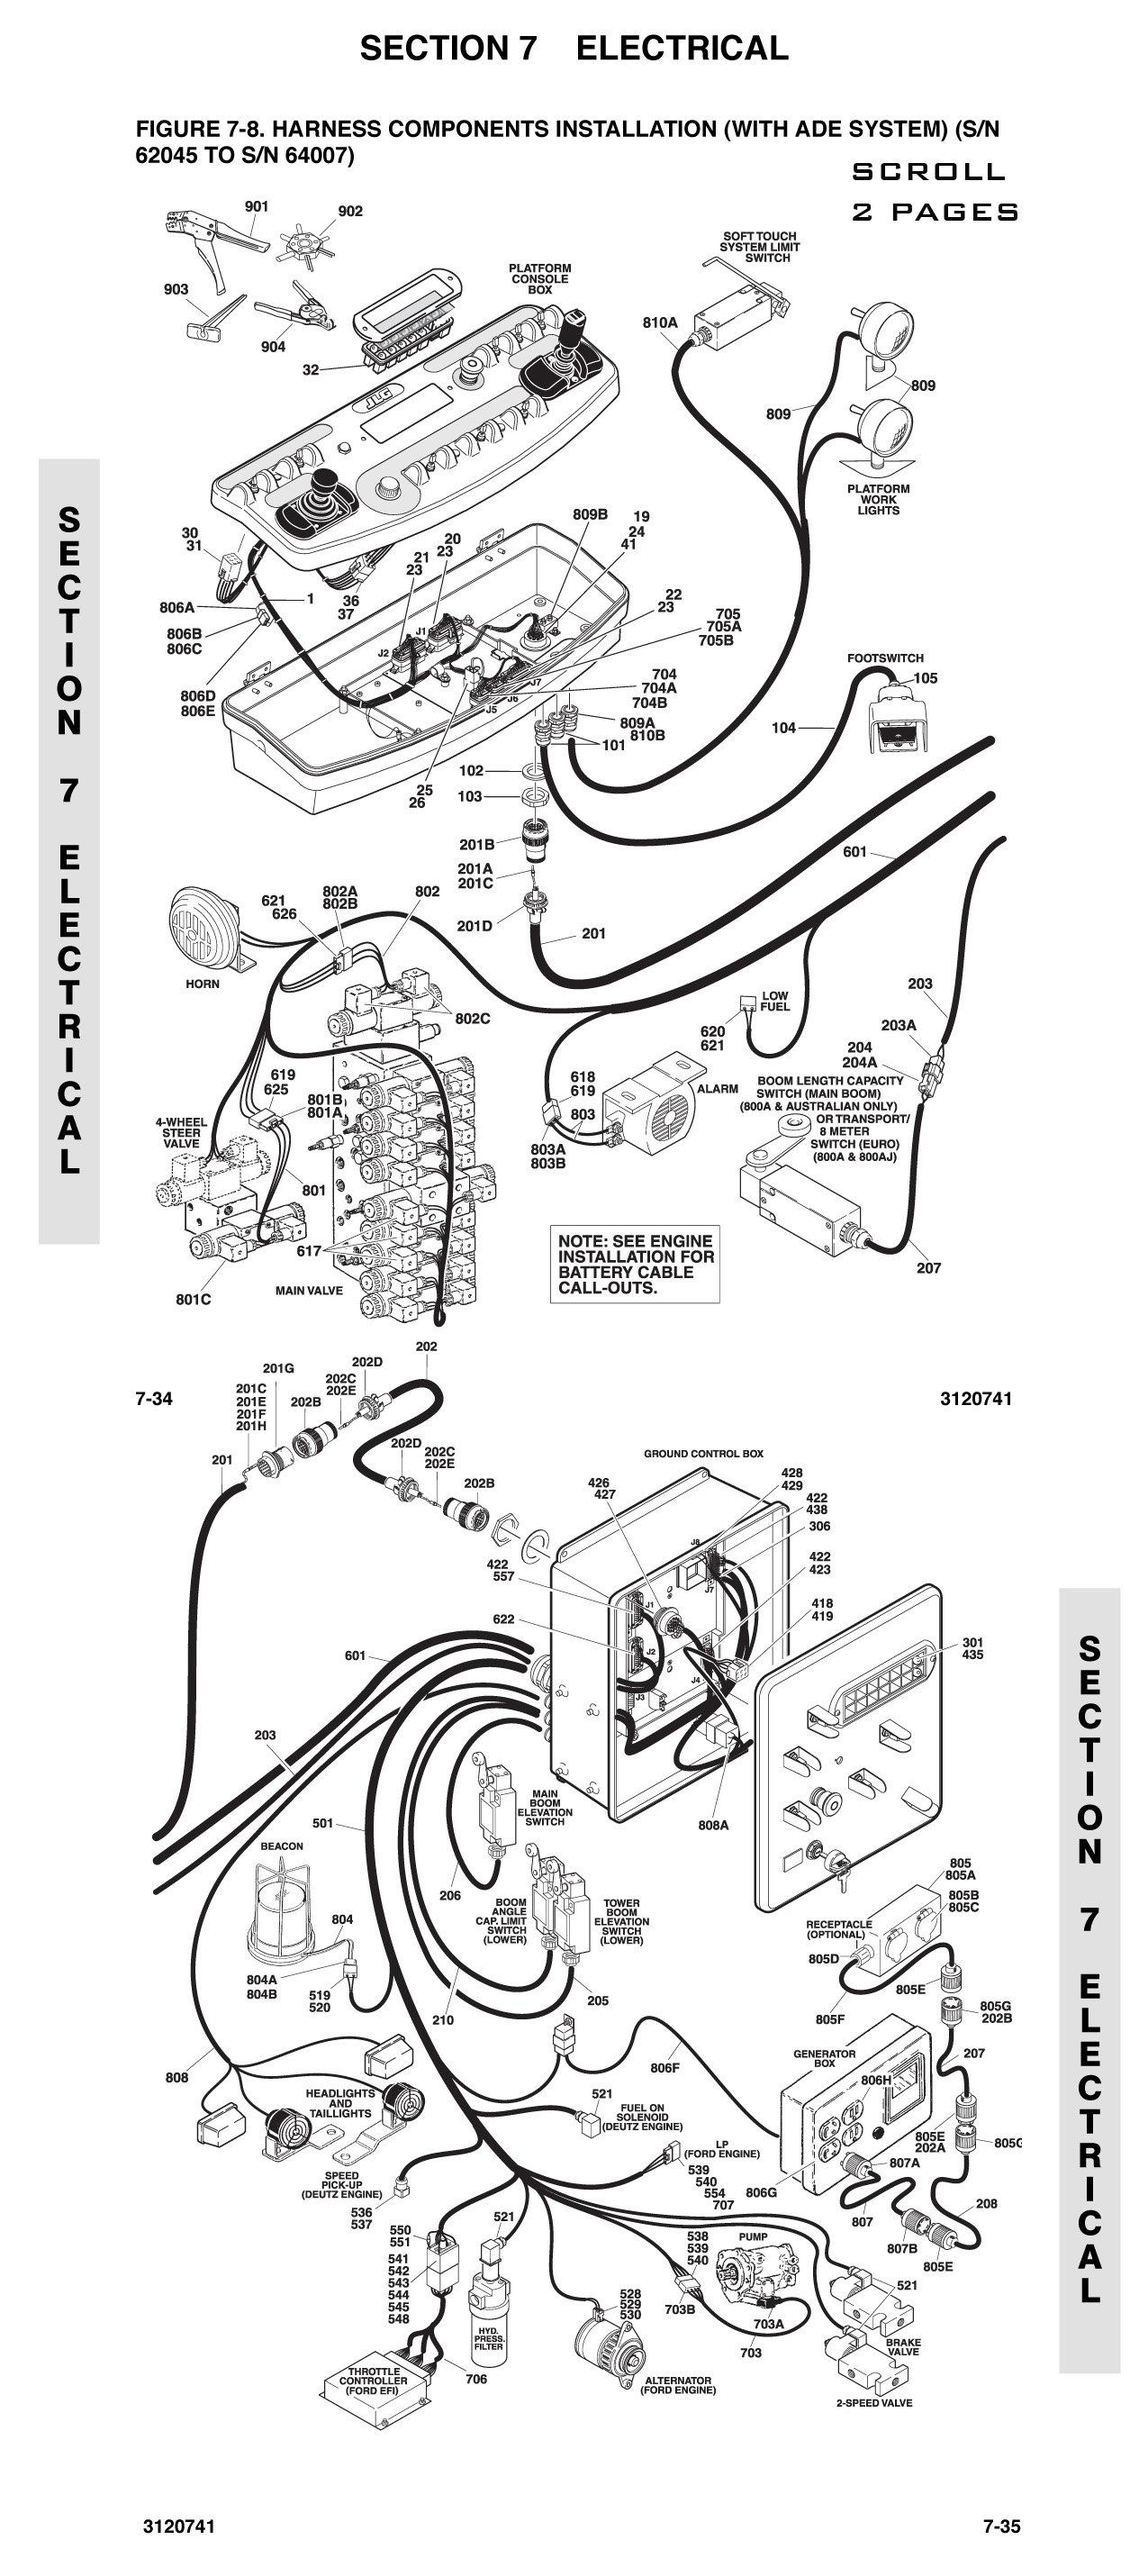 jlg wiring diagram 18 wiring diagram images wiring For Int Tractor Wiring Diagram IMT 539 Wiring-Diagram